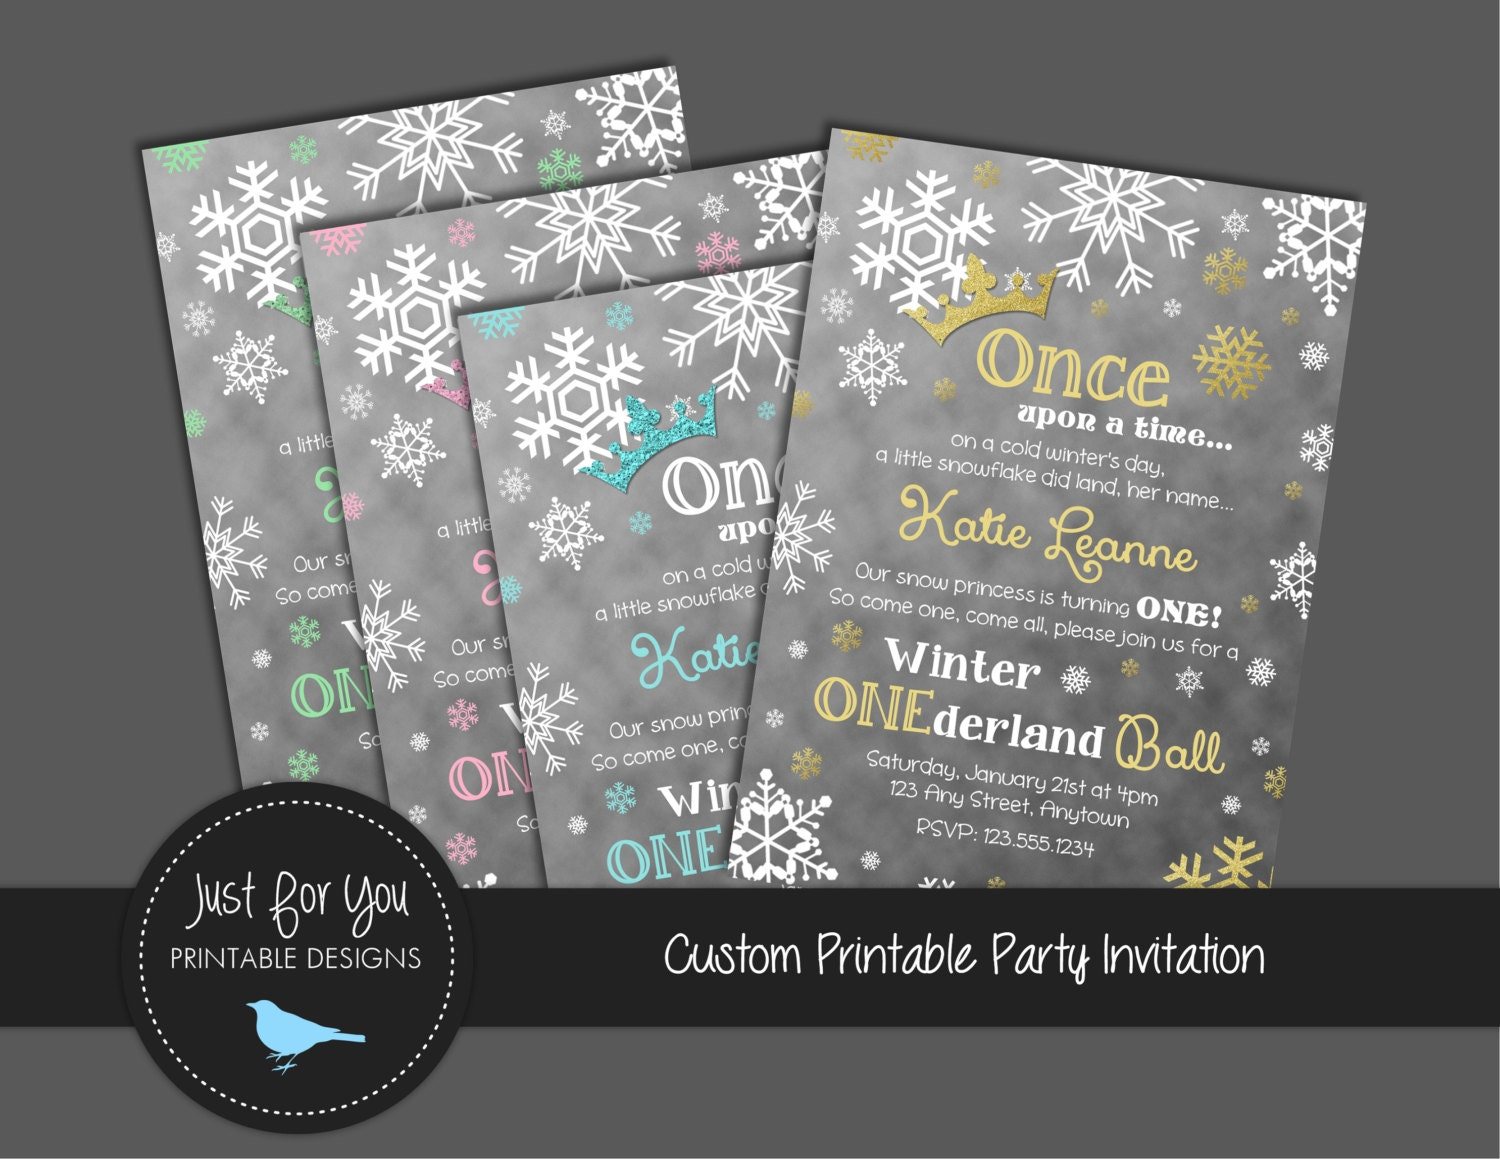 winter onederland snowflake ball birthday party invitation turquoise pink mint gold silver you print custom printable diy invite - Winter Onederland Party Invitations